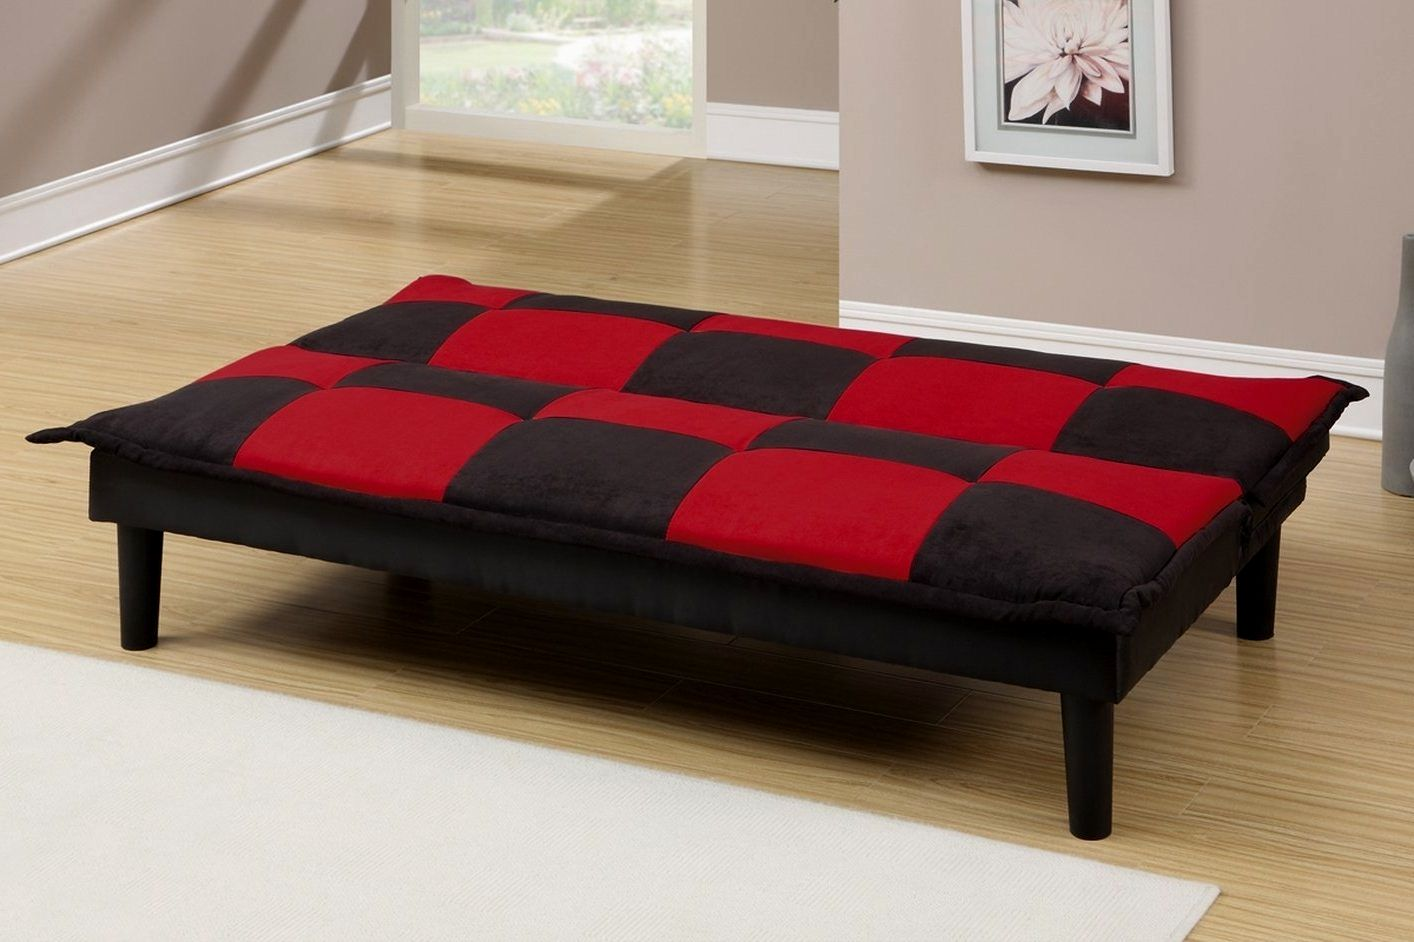 terrific tri fold sofa bed photograph-Amazing Tri Fold sofa Bed Model